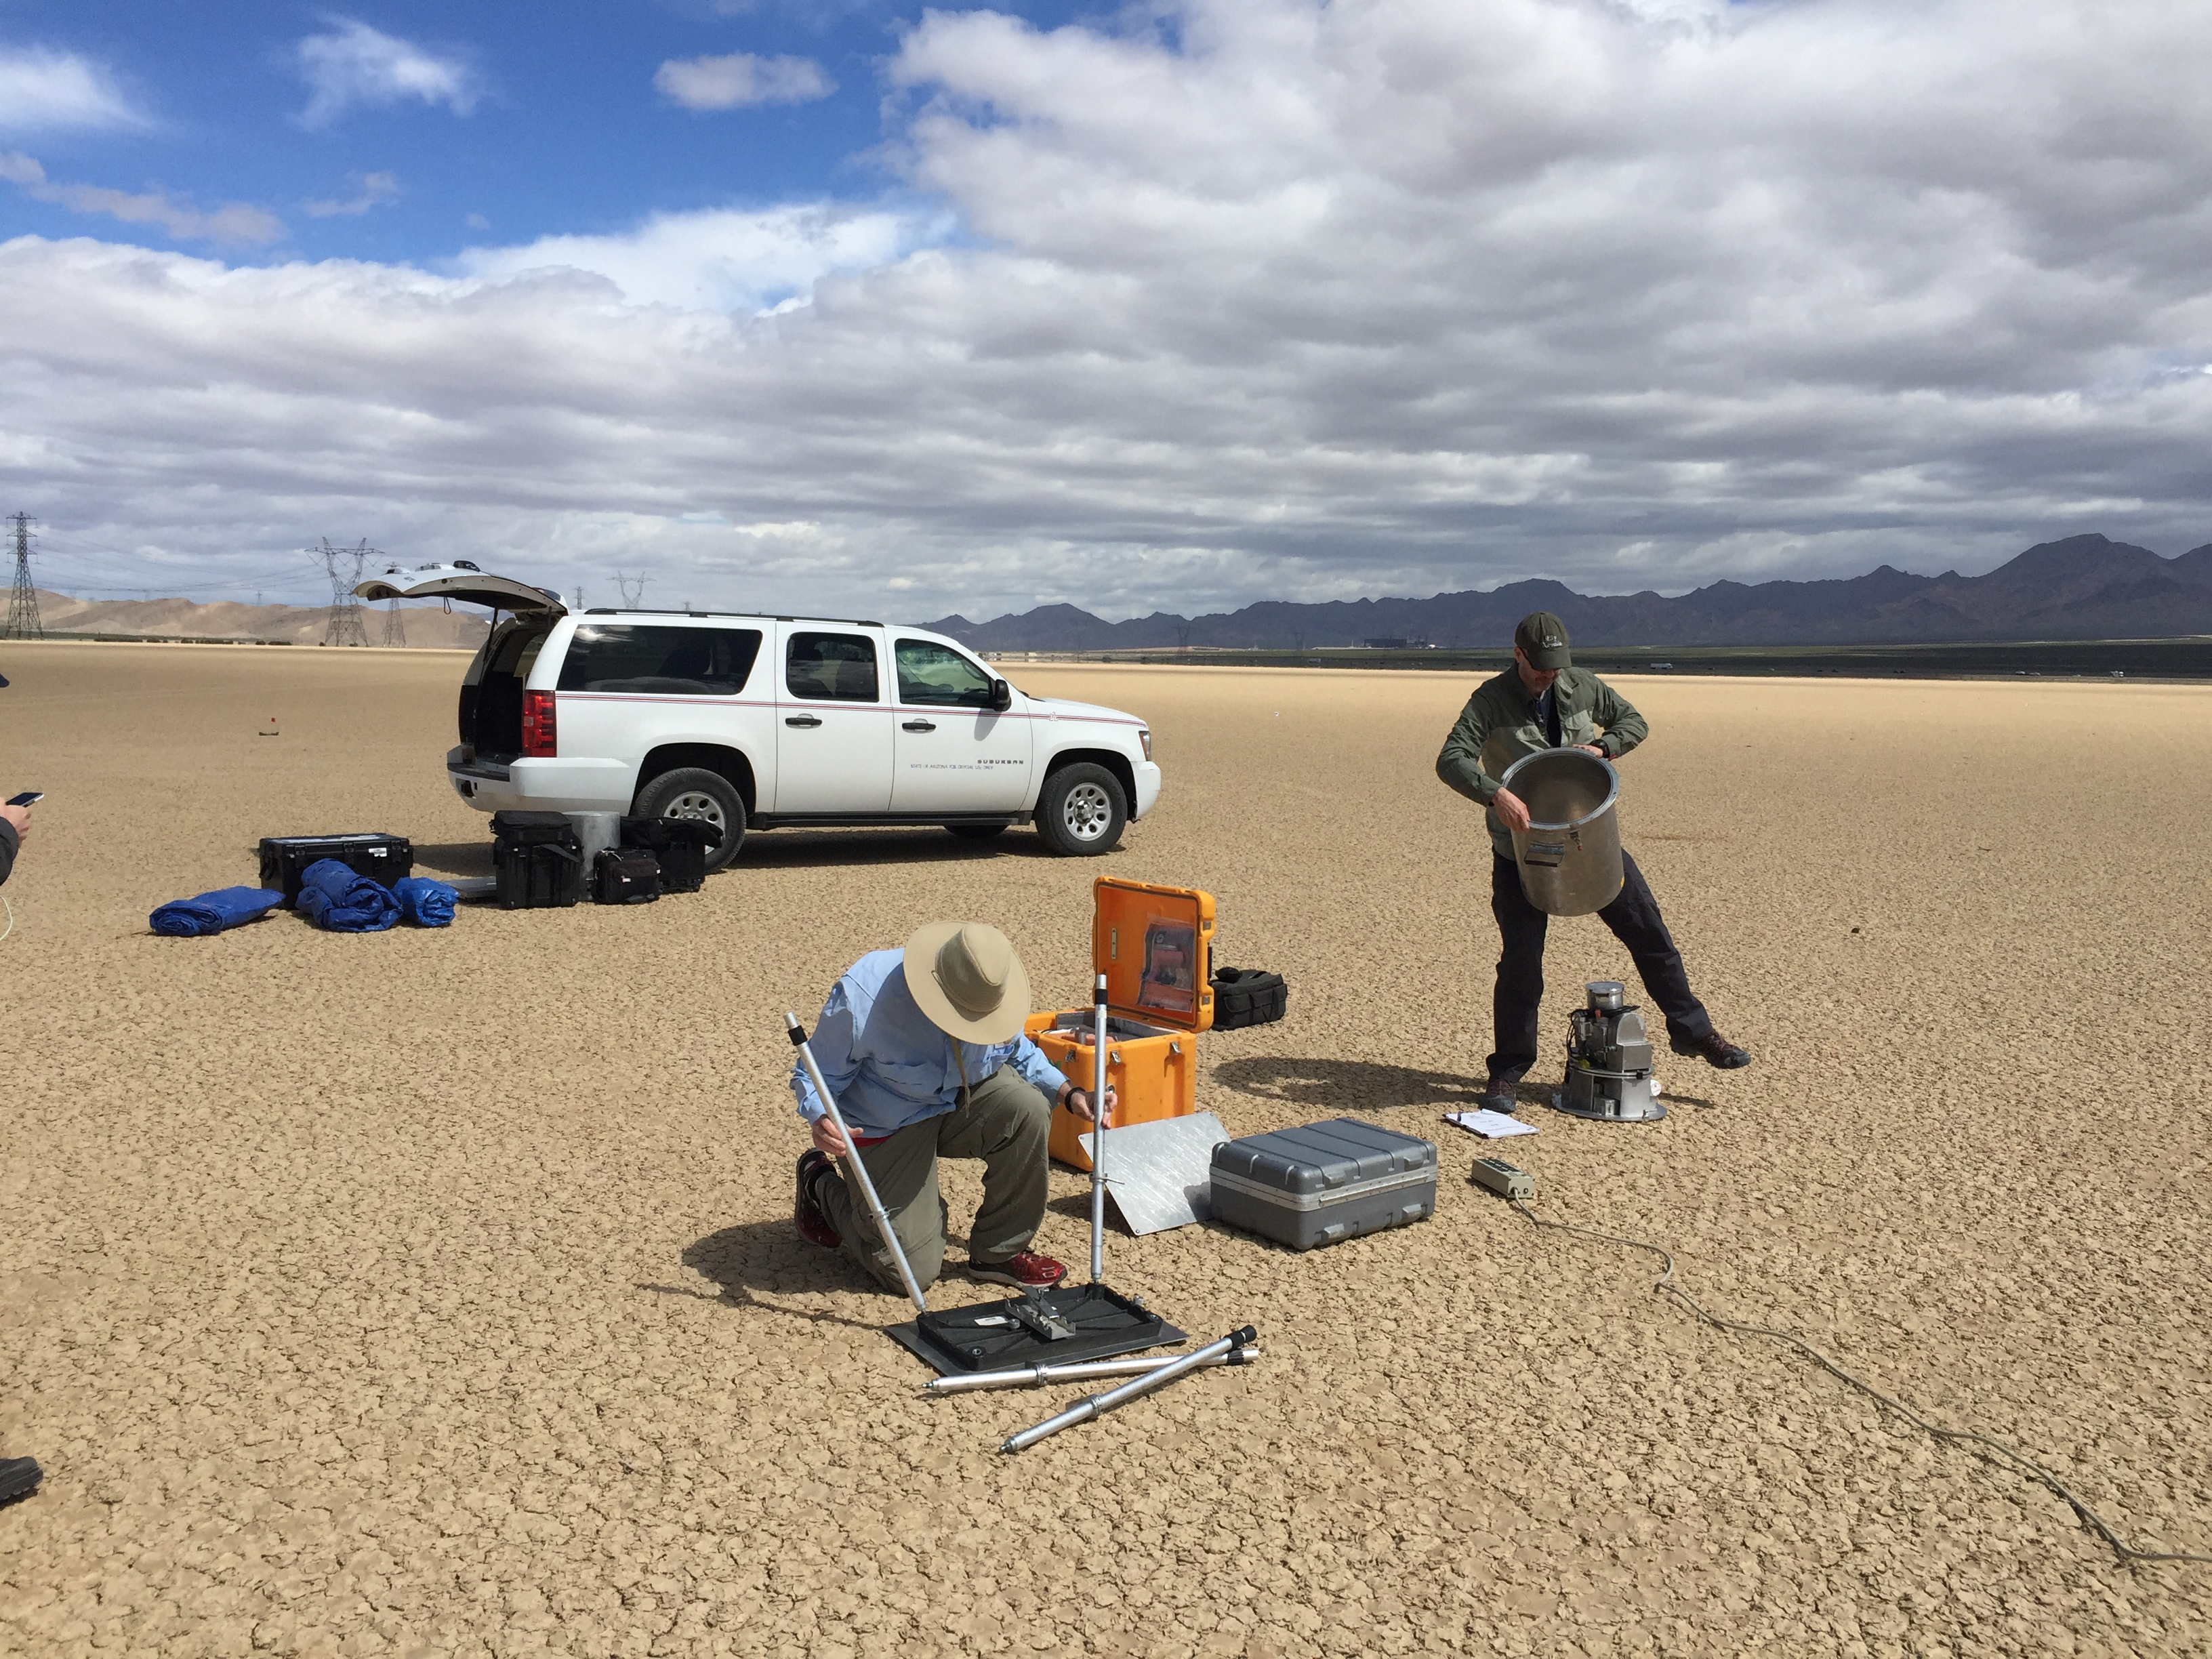 Ground validation support in Ivanpah, California. Credit: NASA JPL